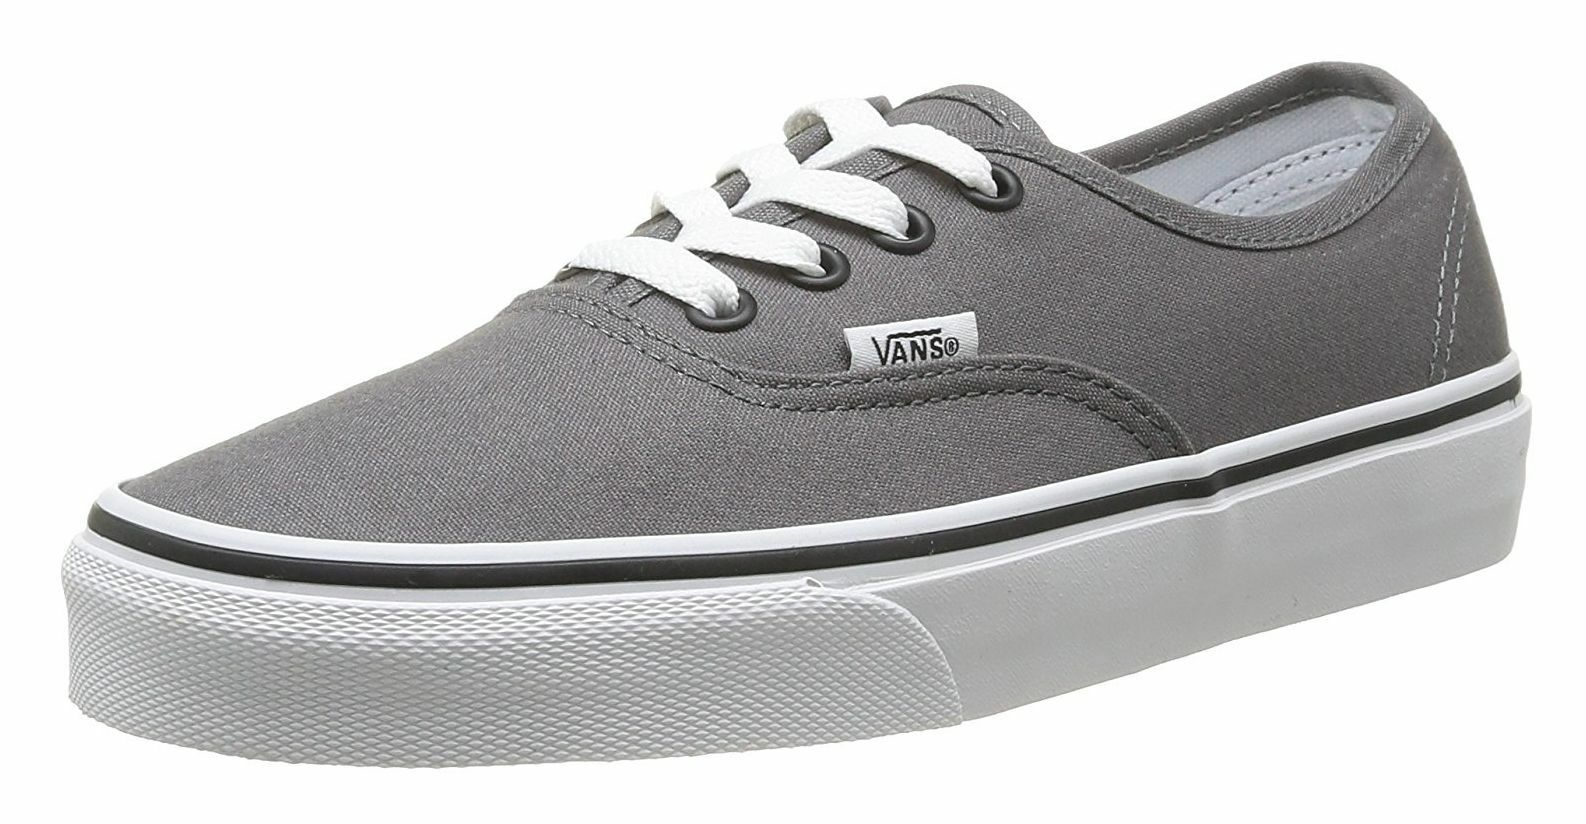 Vans Authentic Classic Pewter Black Womens Sneakers Sneakers Sneakers Tennis shoes 1b9d94